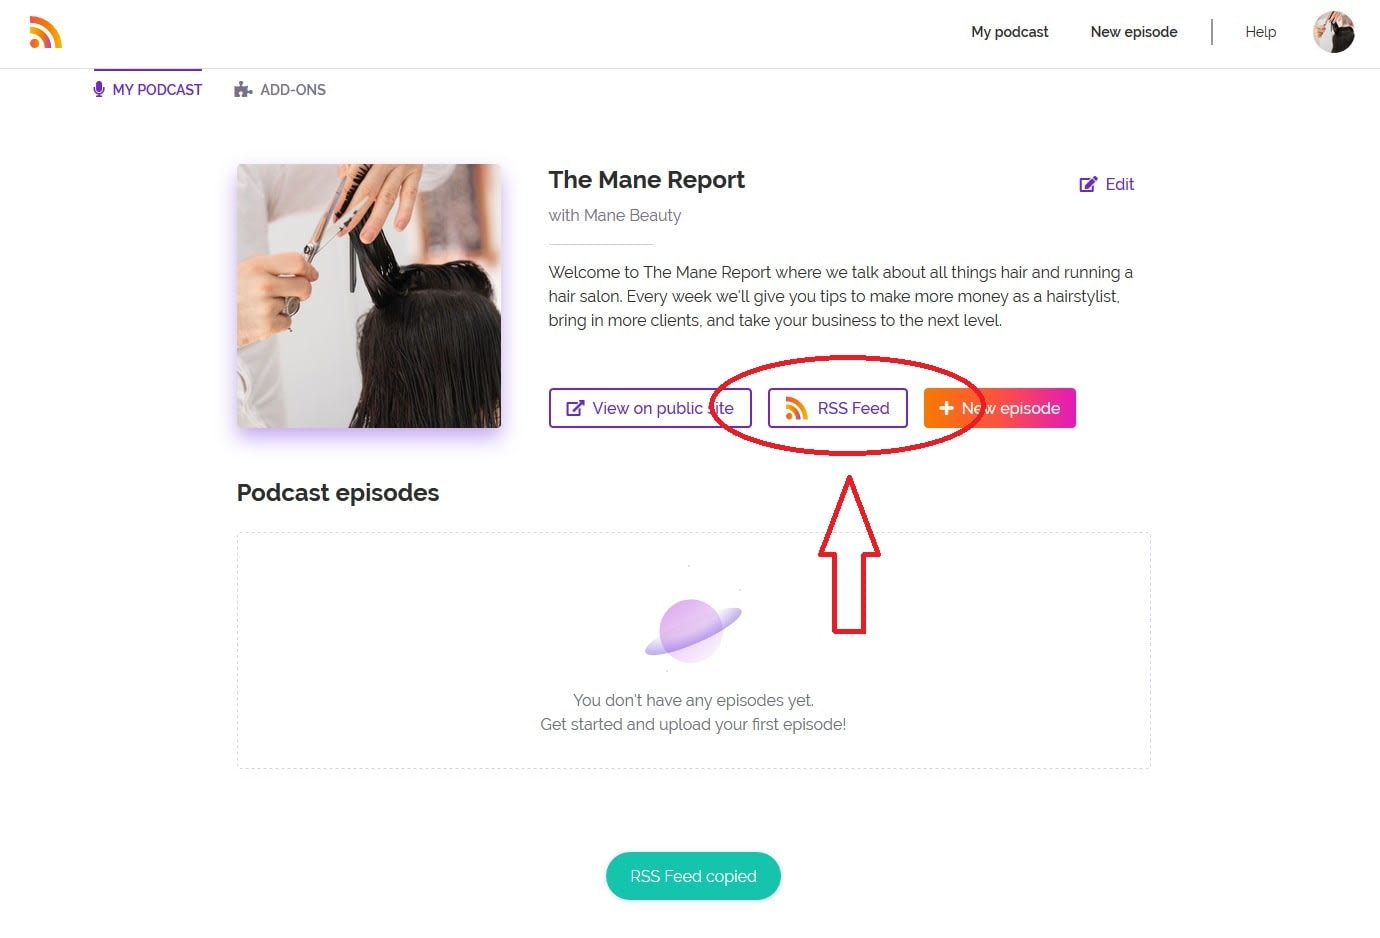 how to find your podcast's RSS feed